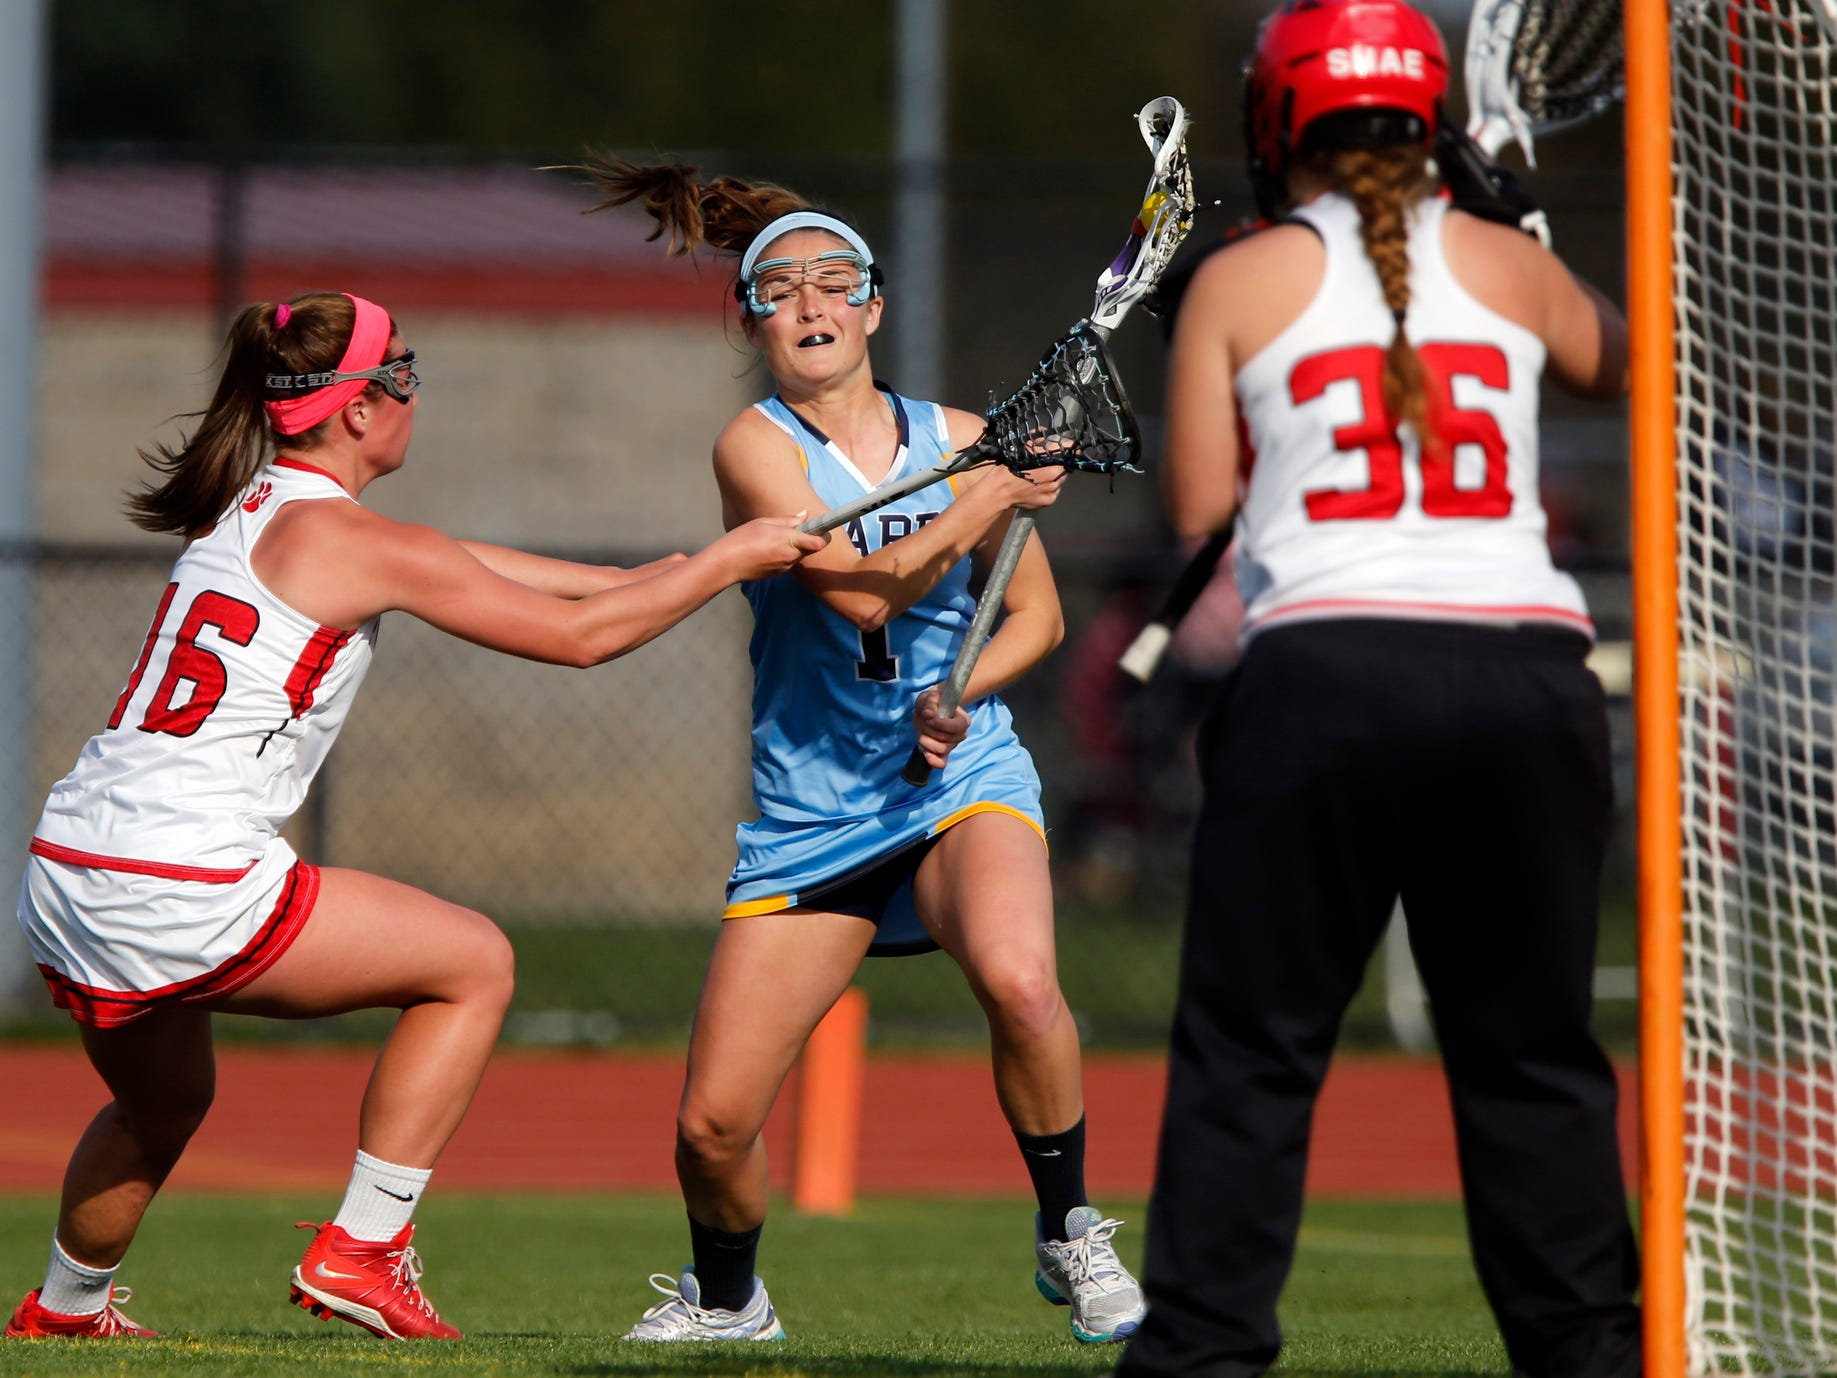 Polytech's Jamie Trabaudo (left) defends against Cape Henlopen's Lizzie Frederick in front of goalkeeper Shae Stephan in Cape Henlopen's 19-9 win at Polytech Tuesday.